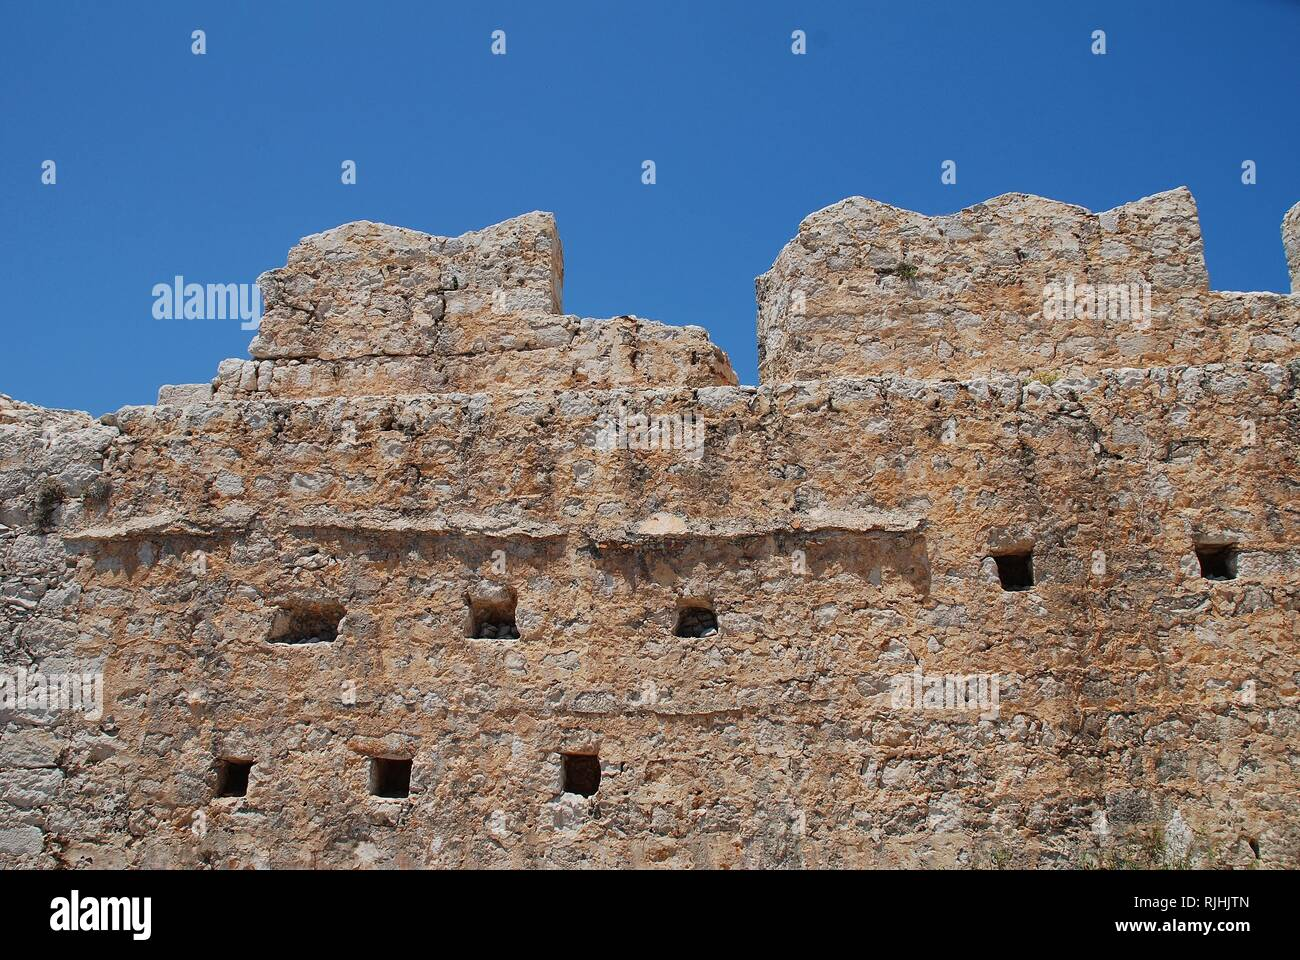 The remains of the medieval Crusader Knights castle above Chorio on the Greek island of Halki. - Stock Image